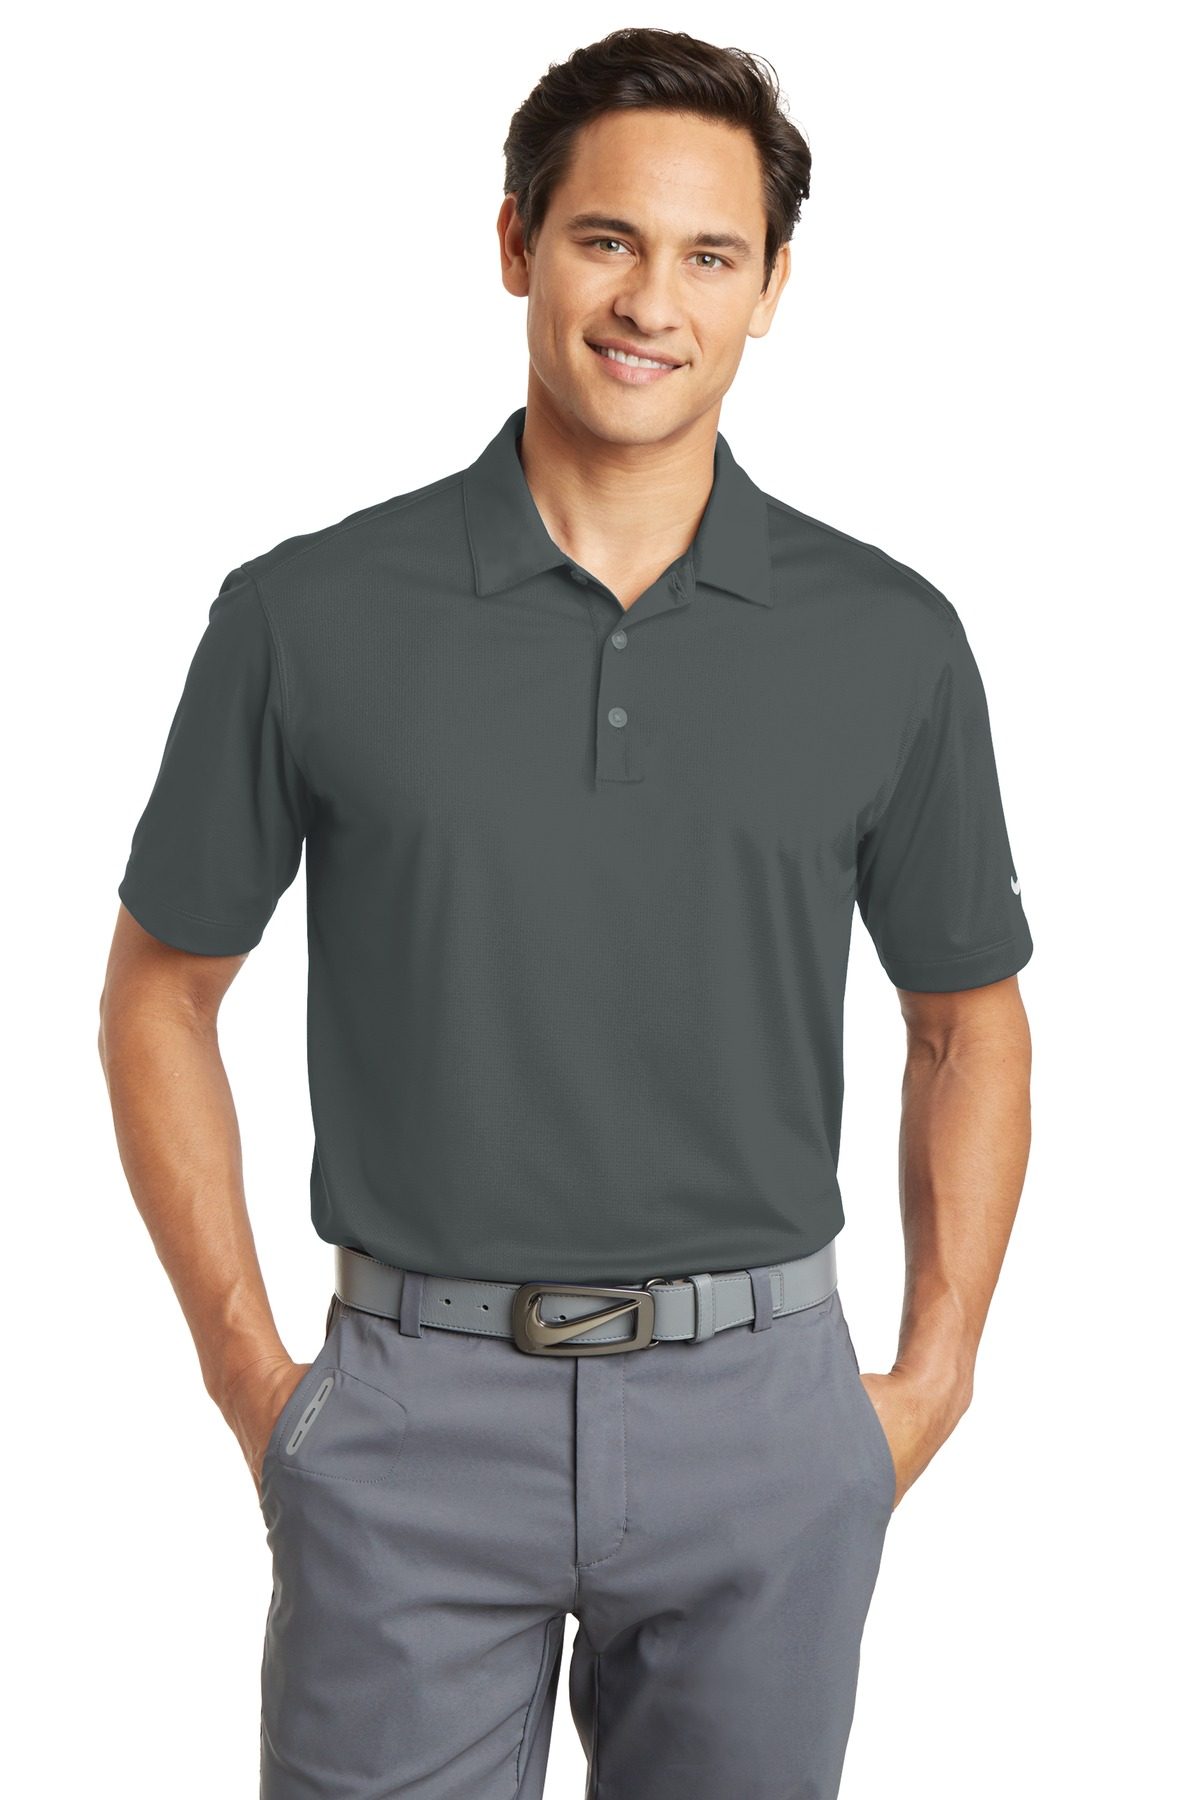 Nike Dri-FIT Vertical Mesh Polo. 637167 - Anthracite